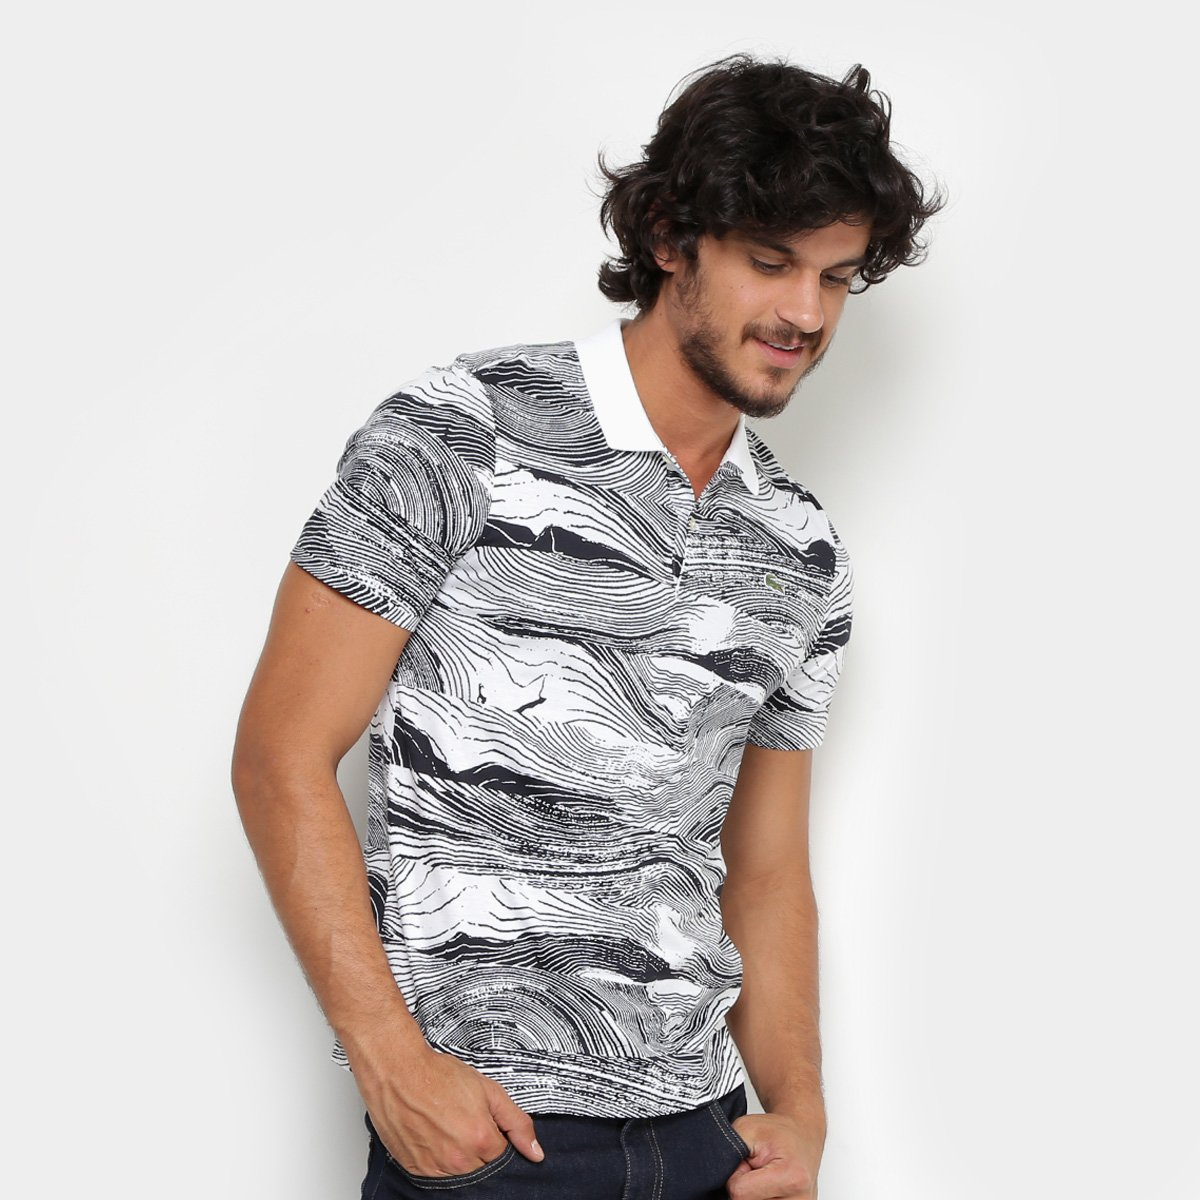 aa32856b09883 Camisa Polo Lacoste Live Jersey Full Print Regular Fit Masculina - Compre  Agora